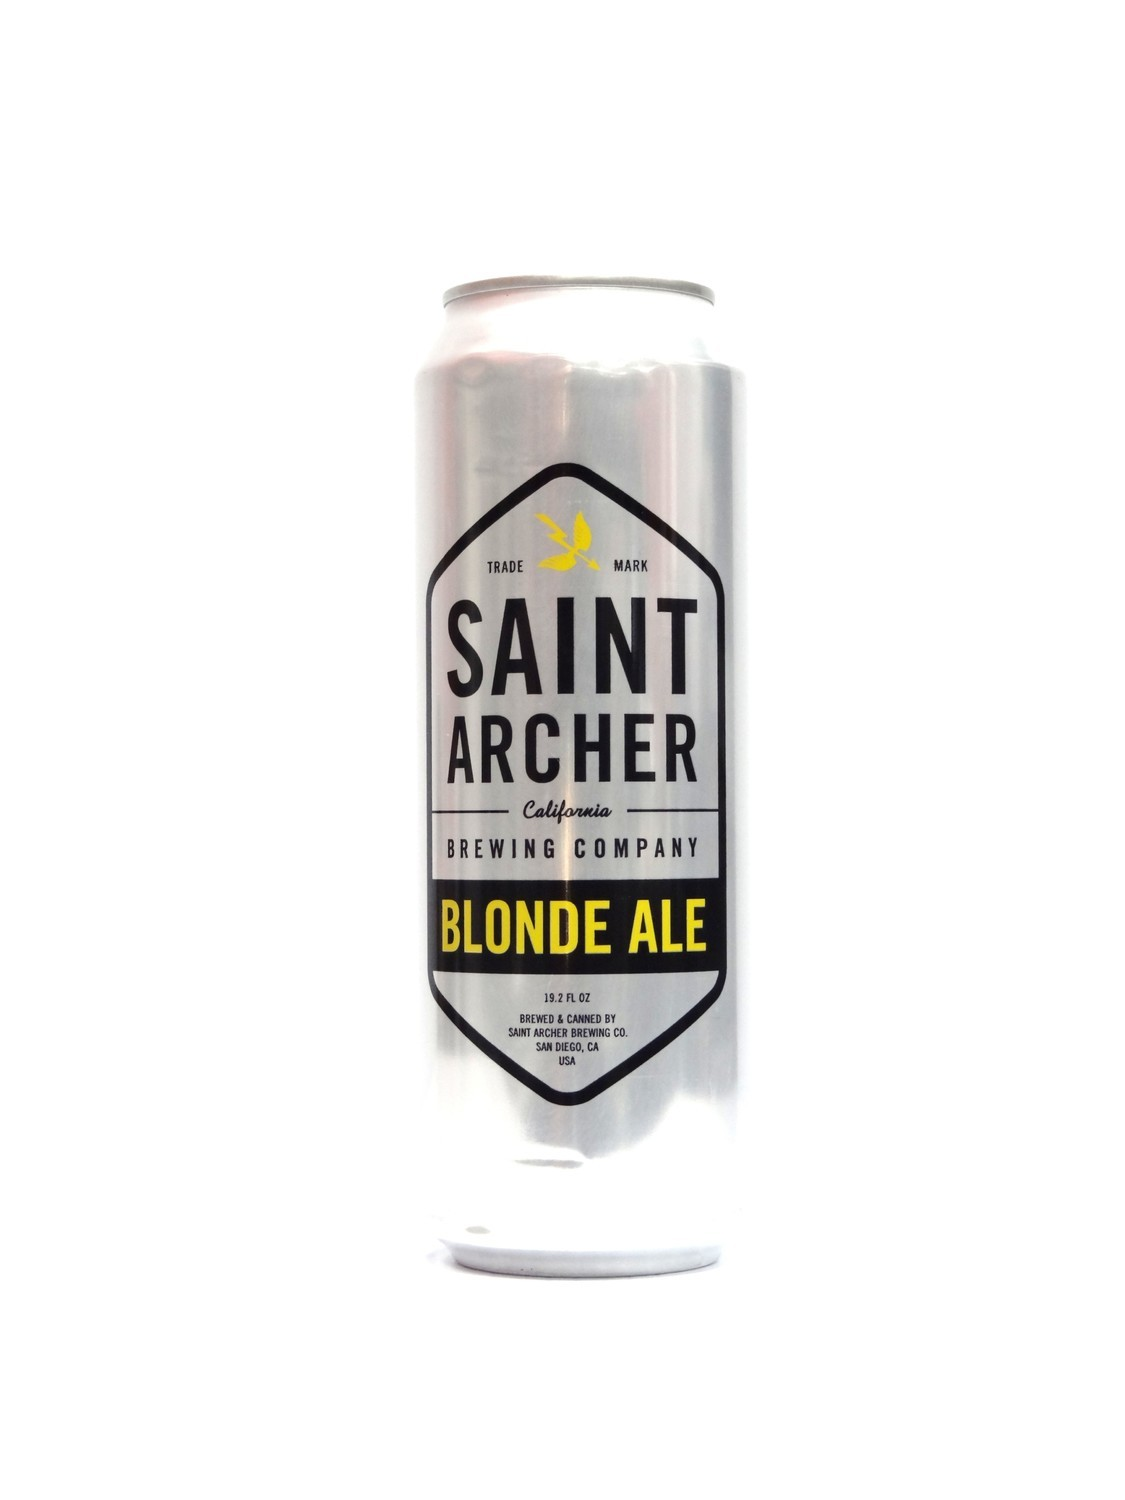 Blonde Ale By Saint Archer from San Diego, CA 19.2oz Single Can (F3-2)C